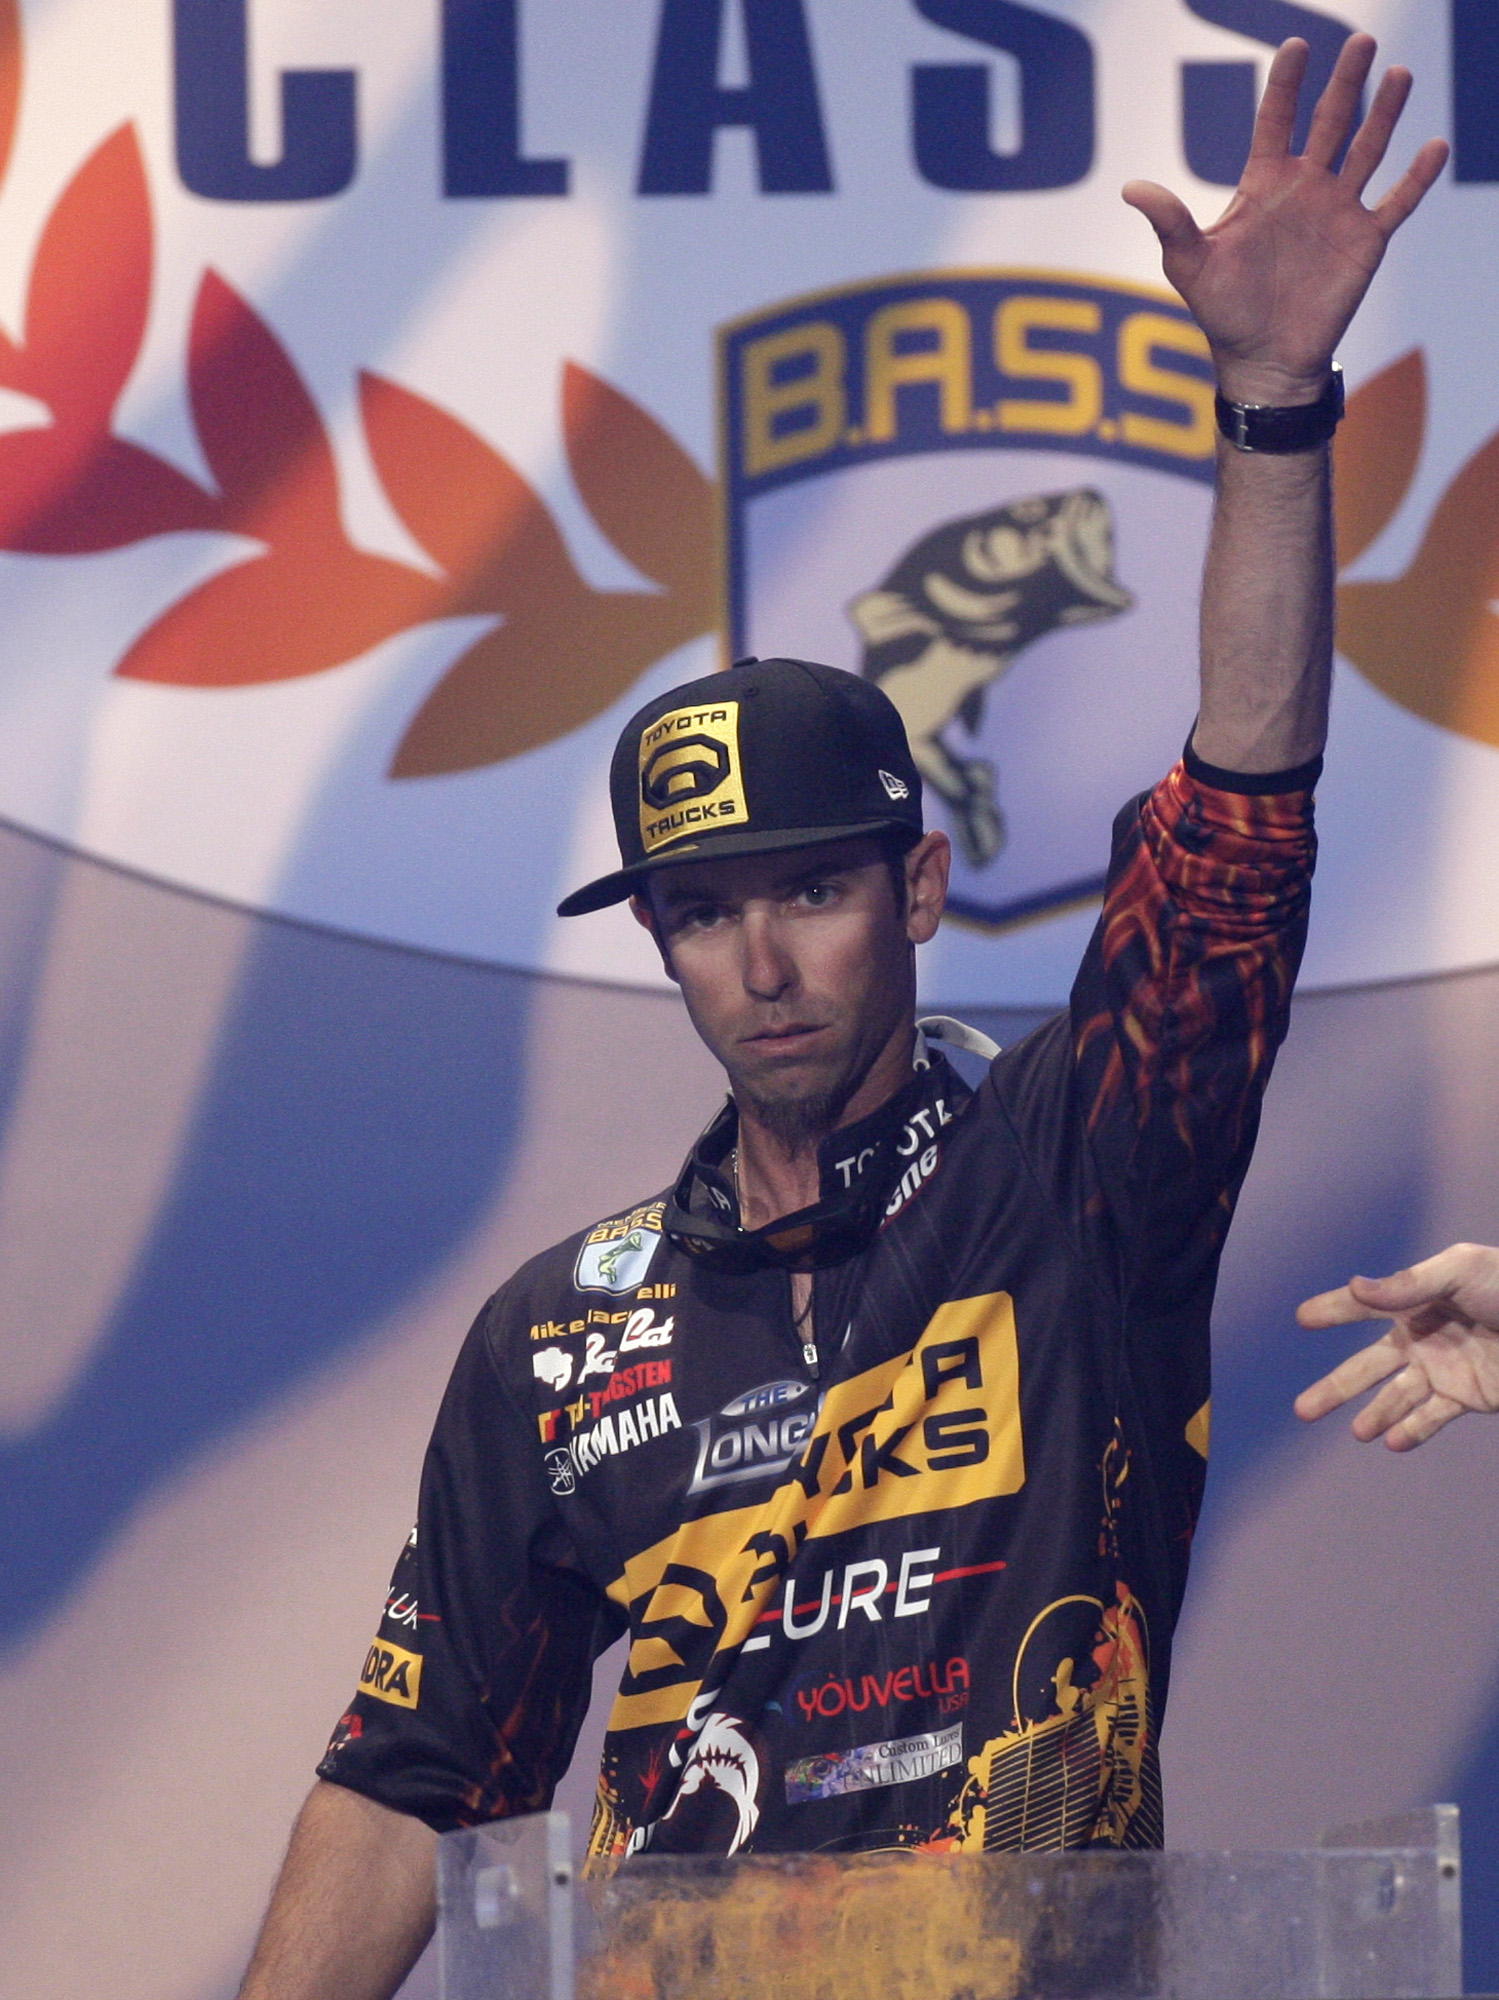 Qvc Masson Bassmaster Pro Iaconelli To Appear On Qvc